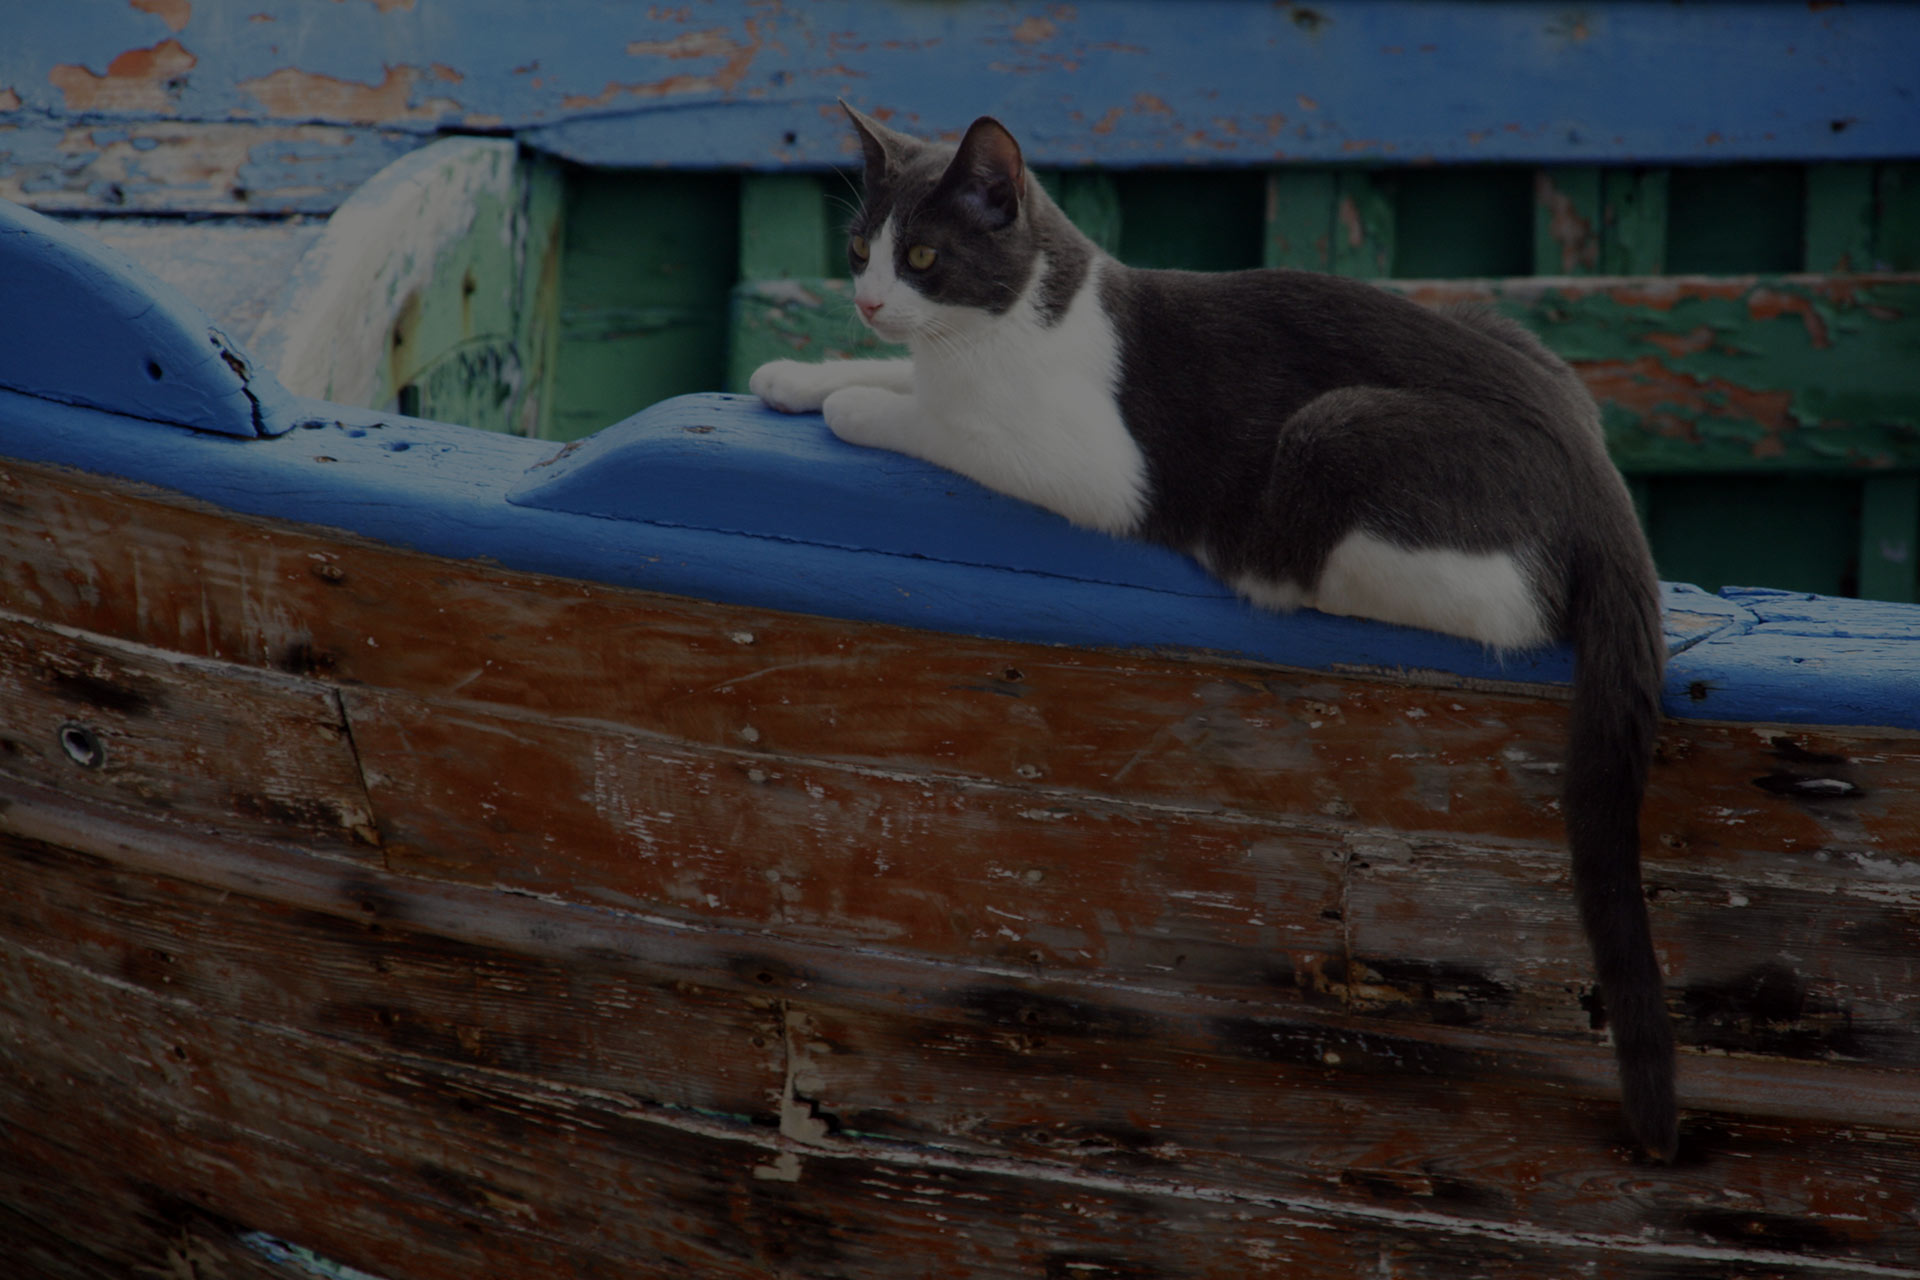 Cat lying on an old boat in Italian port